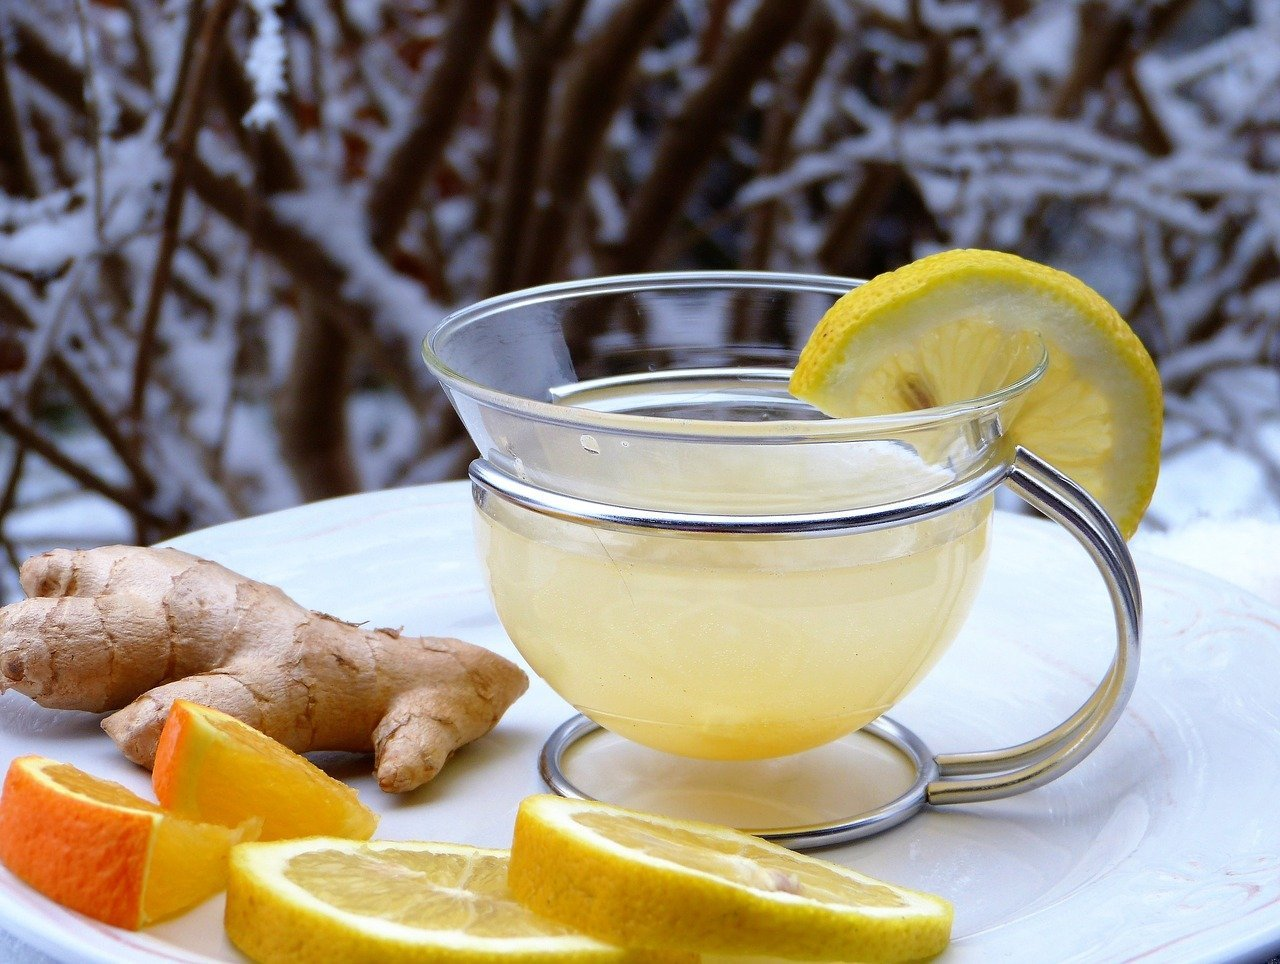 These are the essentials you need to stay healthy this winter